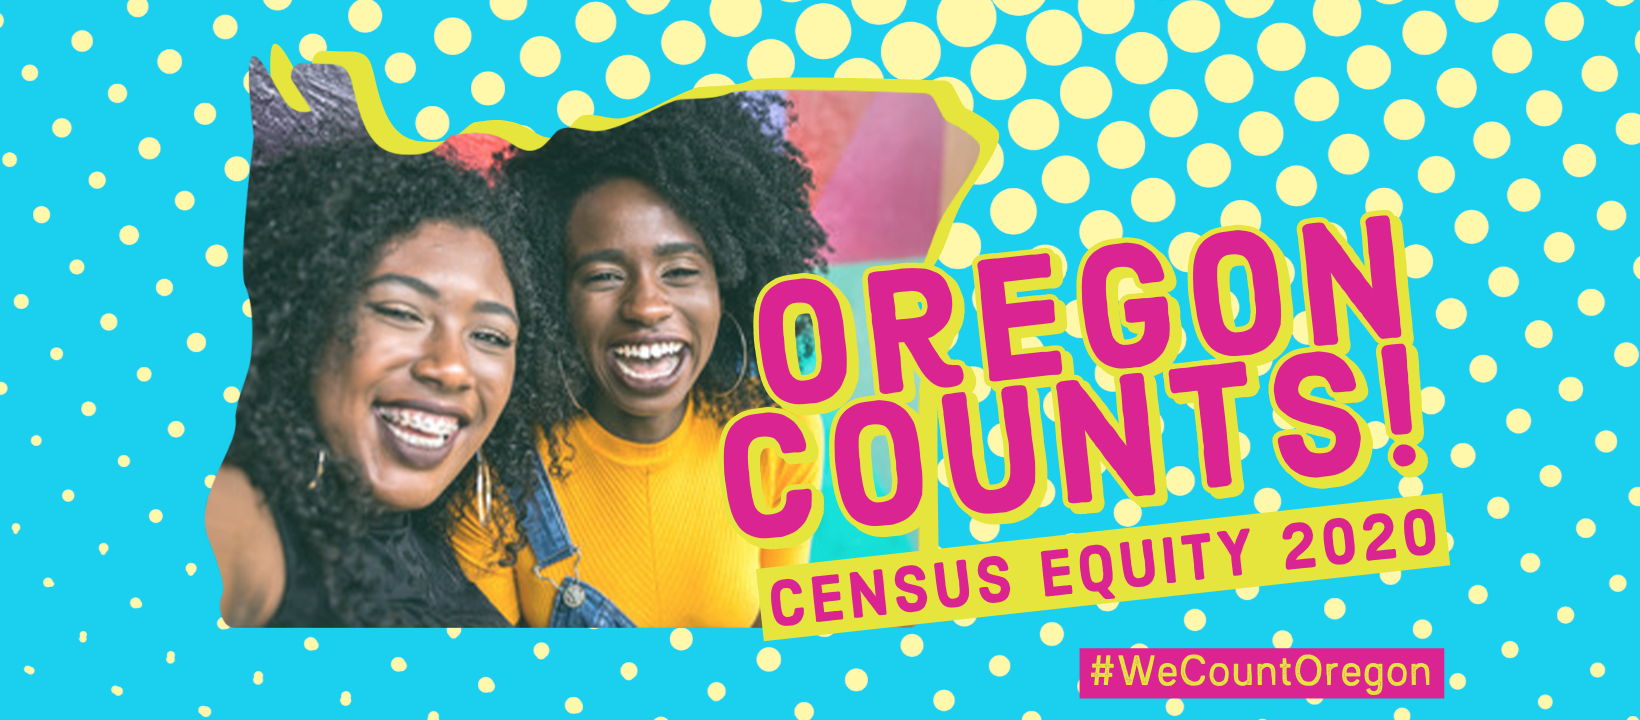 "Text reads: ""Oregon Counts! Census Equity 2020"" and ""#WeCountOregon."" A photo of two smiling, laughing people is cropped in the shape of Oregon. All of this is on top of a blue background with a grid of beige dots."